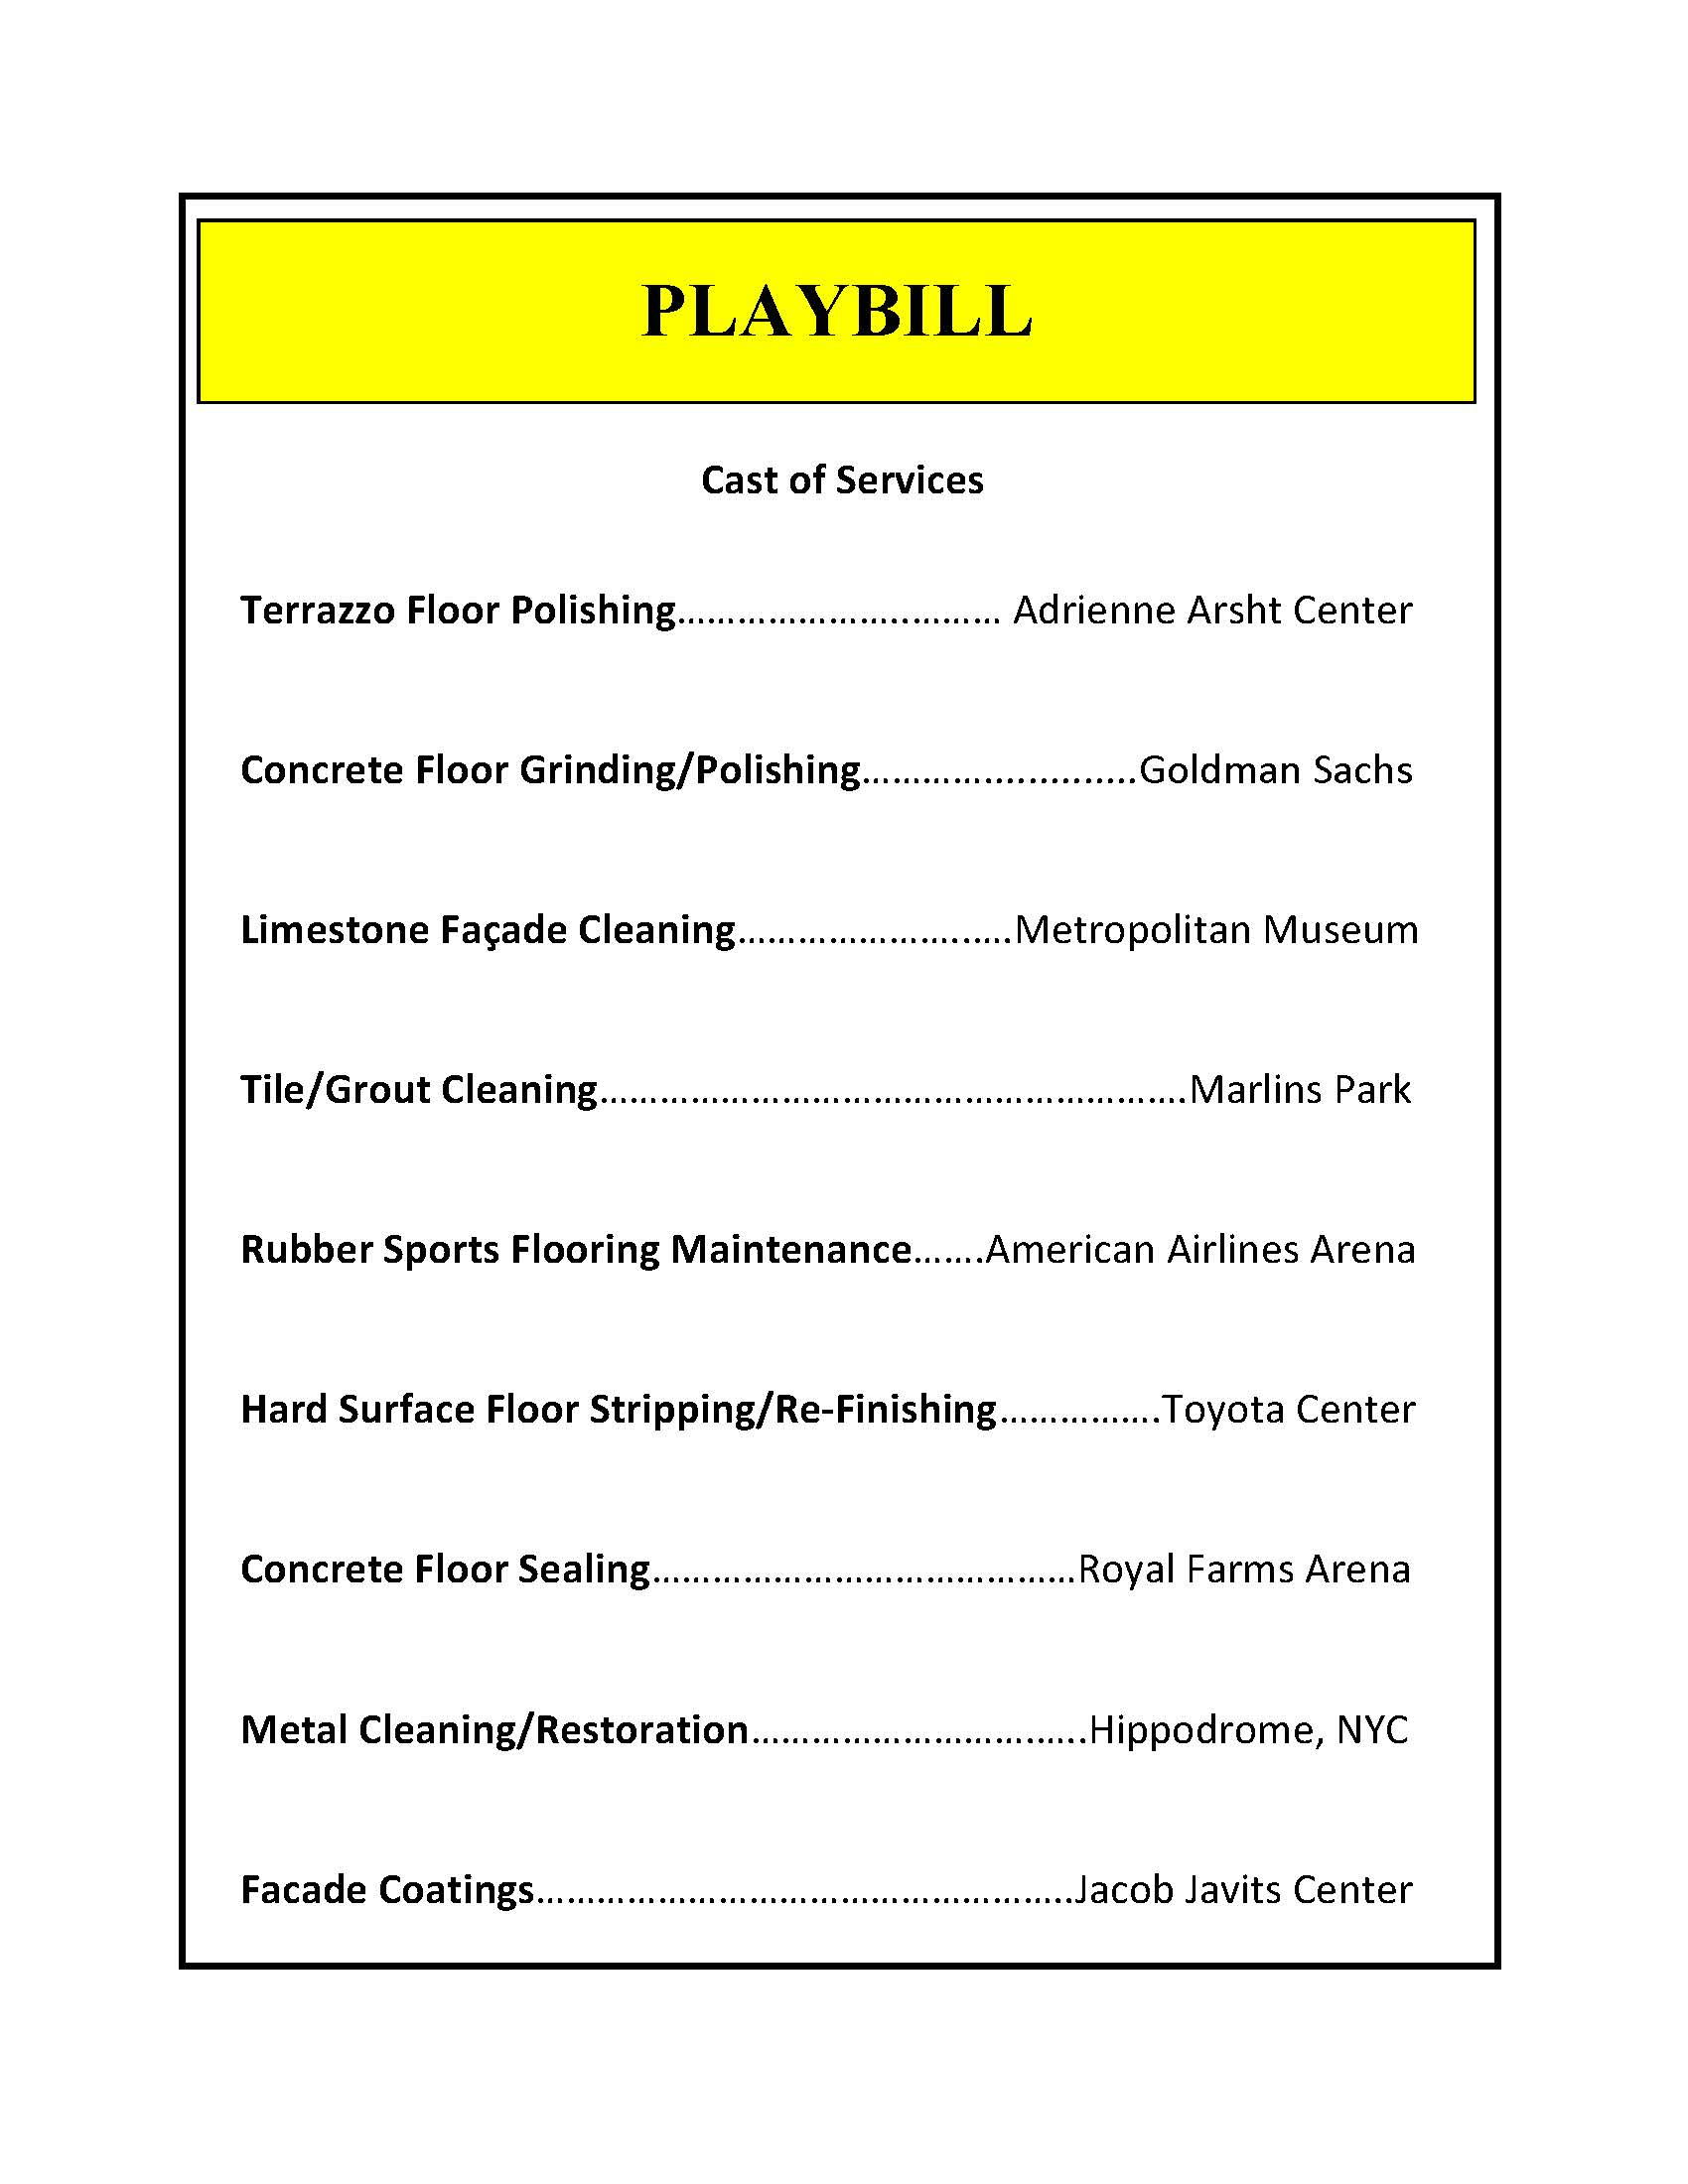 PLAYBILL - terrazo page.png